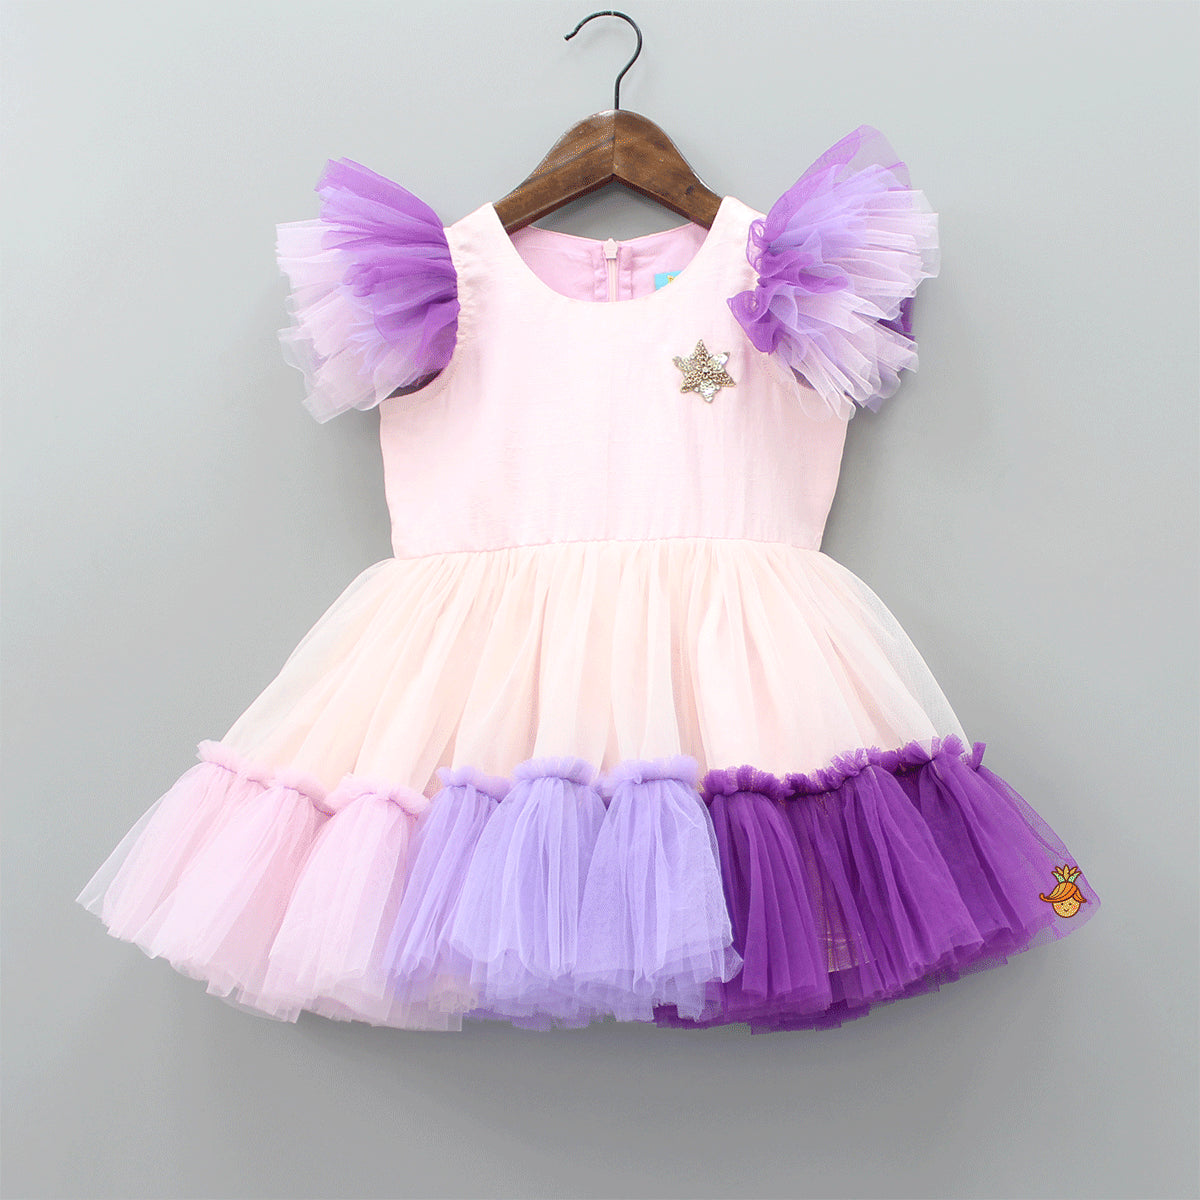 Pre Order: Sequin Star Patch Frilled Dress